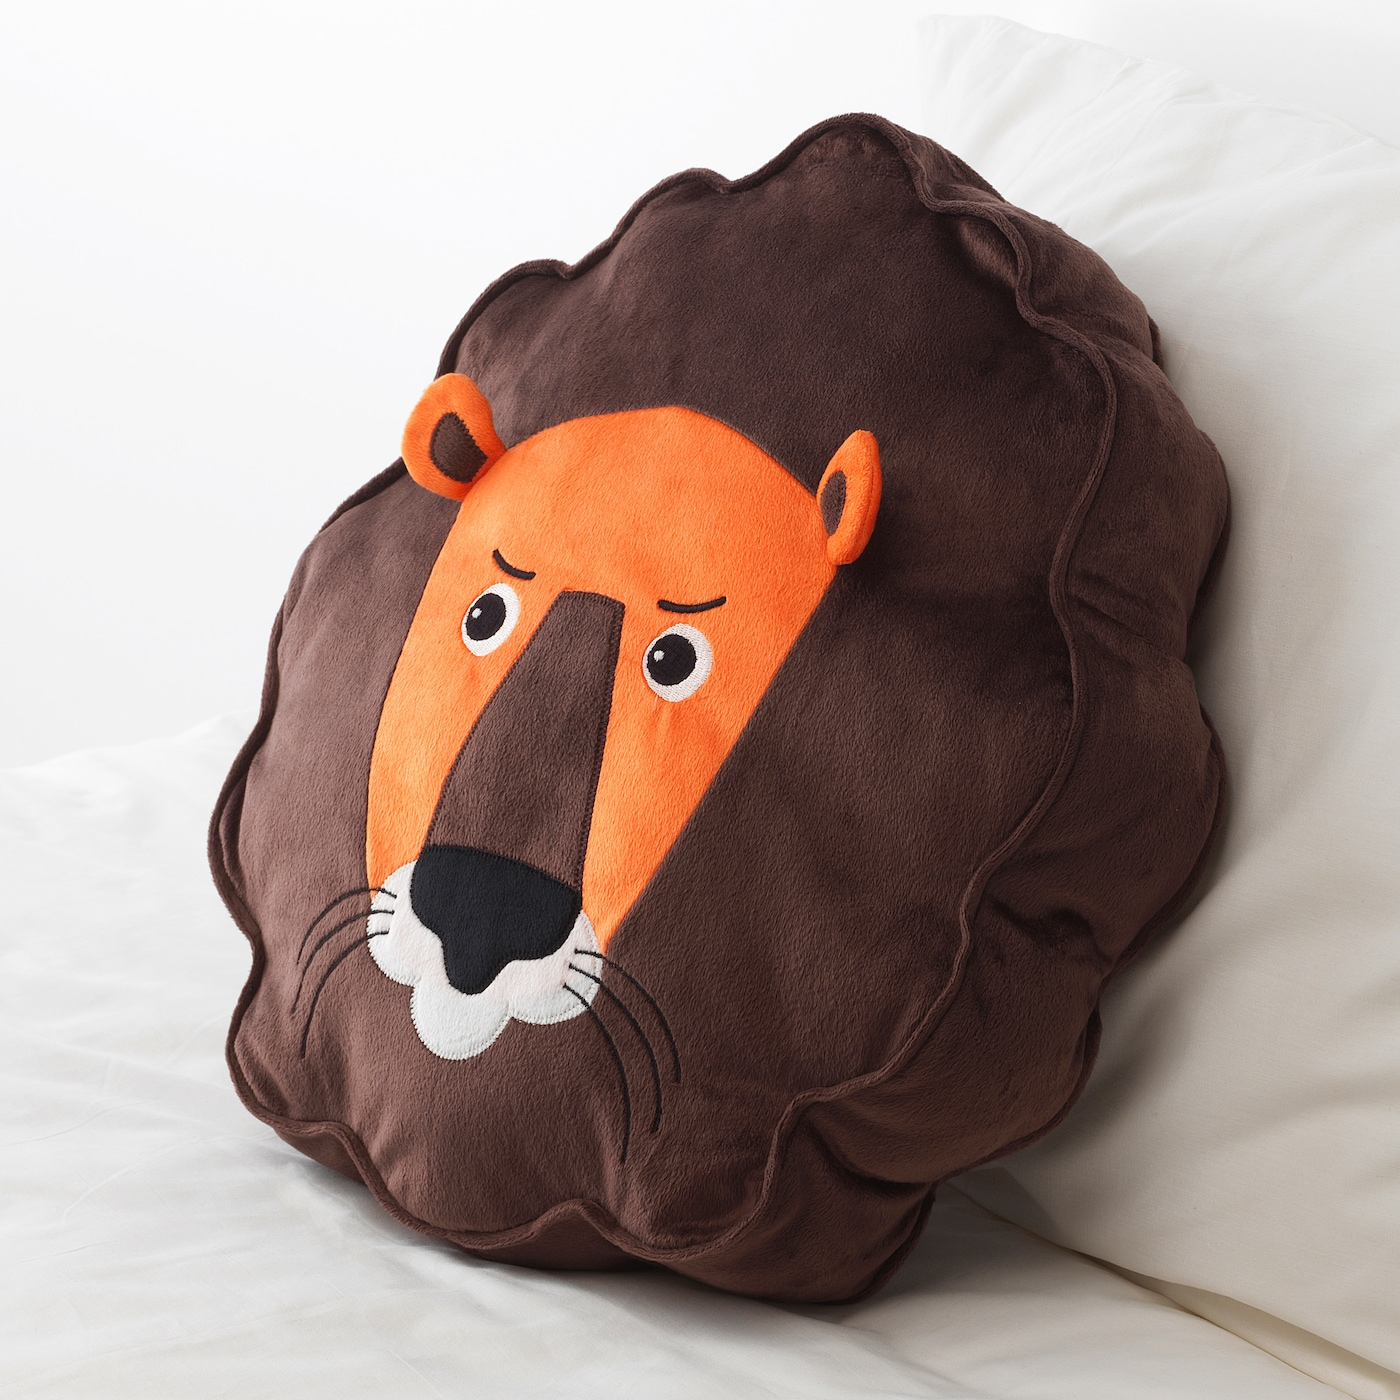 Djungelskog Cushion Lion Brown Ikea